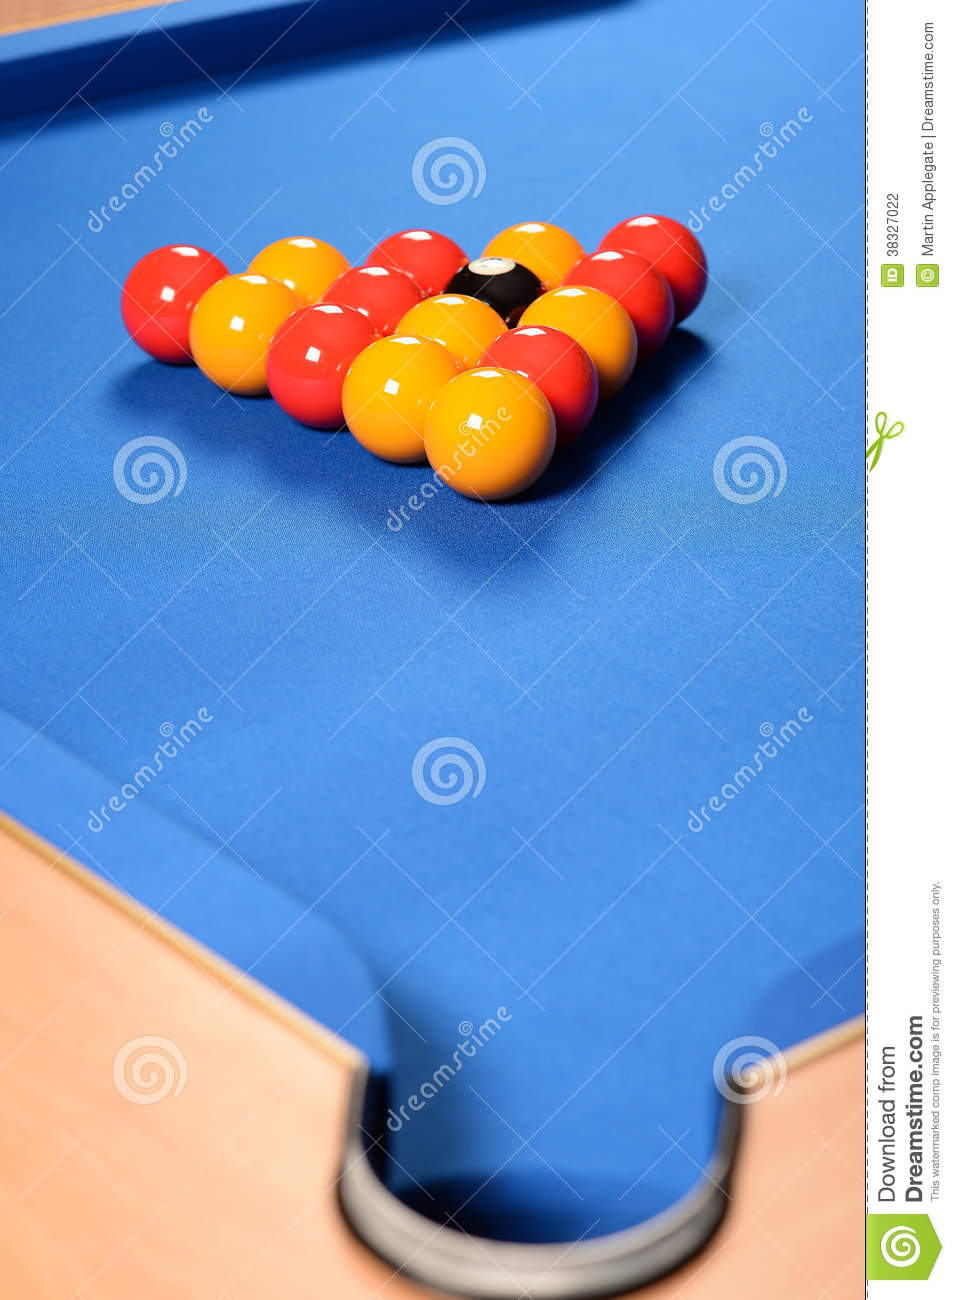 Balls Set Up On Pool Table Stock Photo Image Of Near - How to set up a pool table